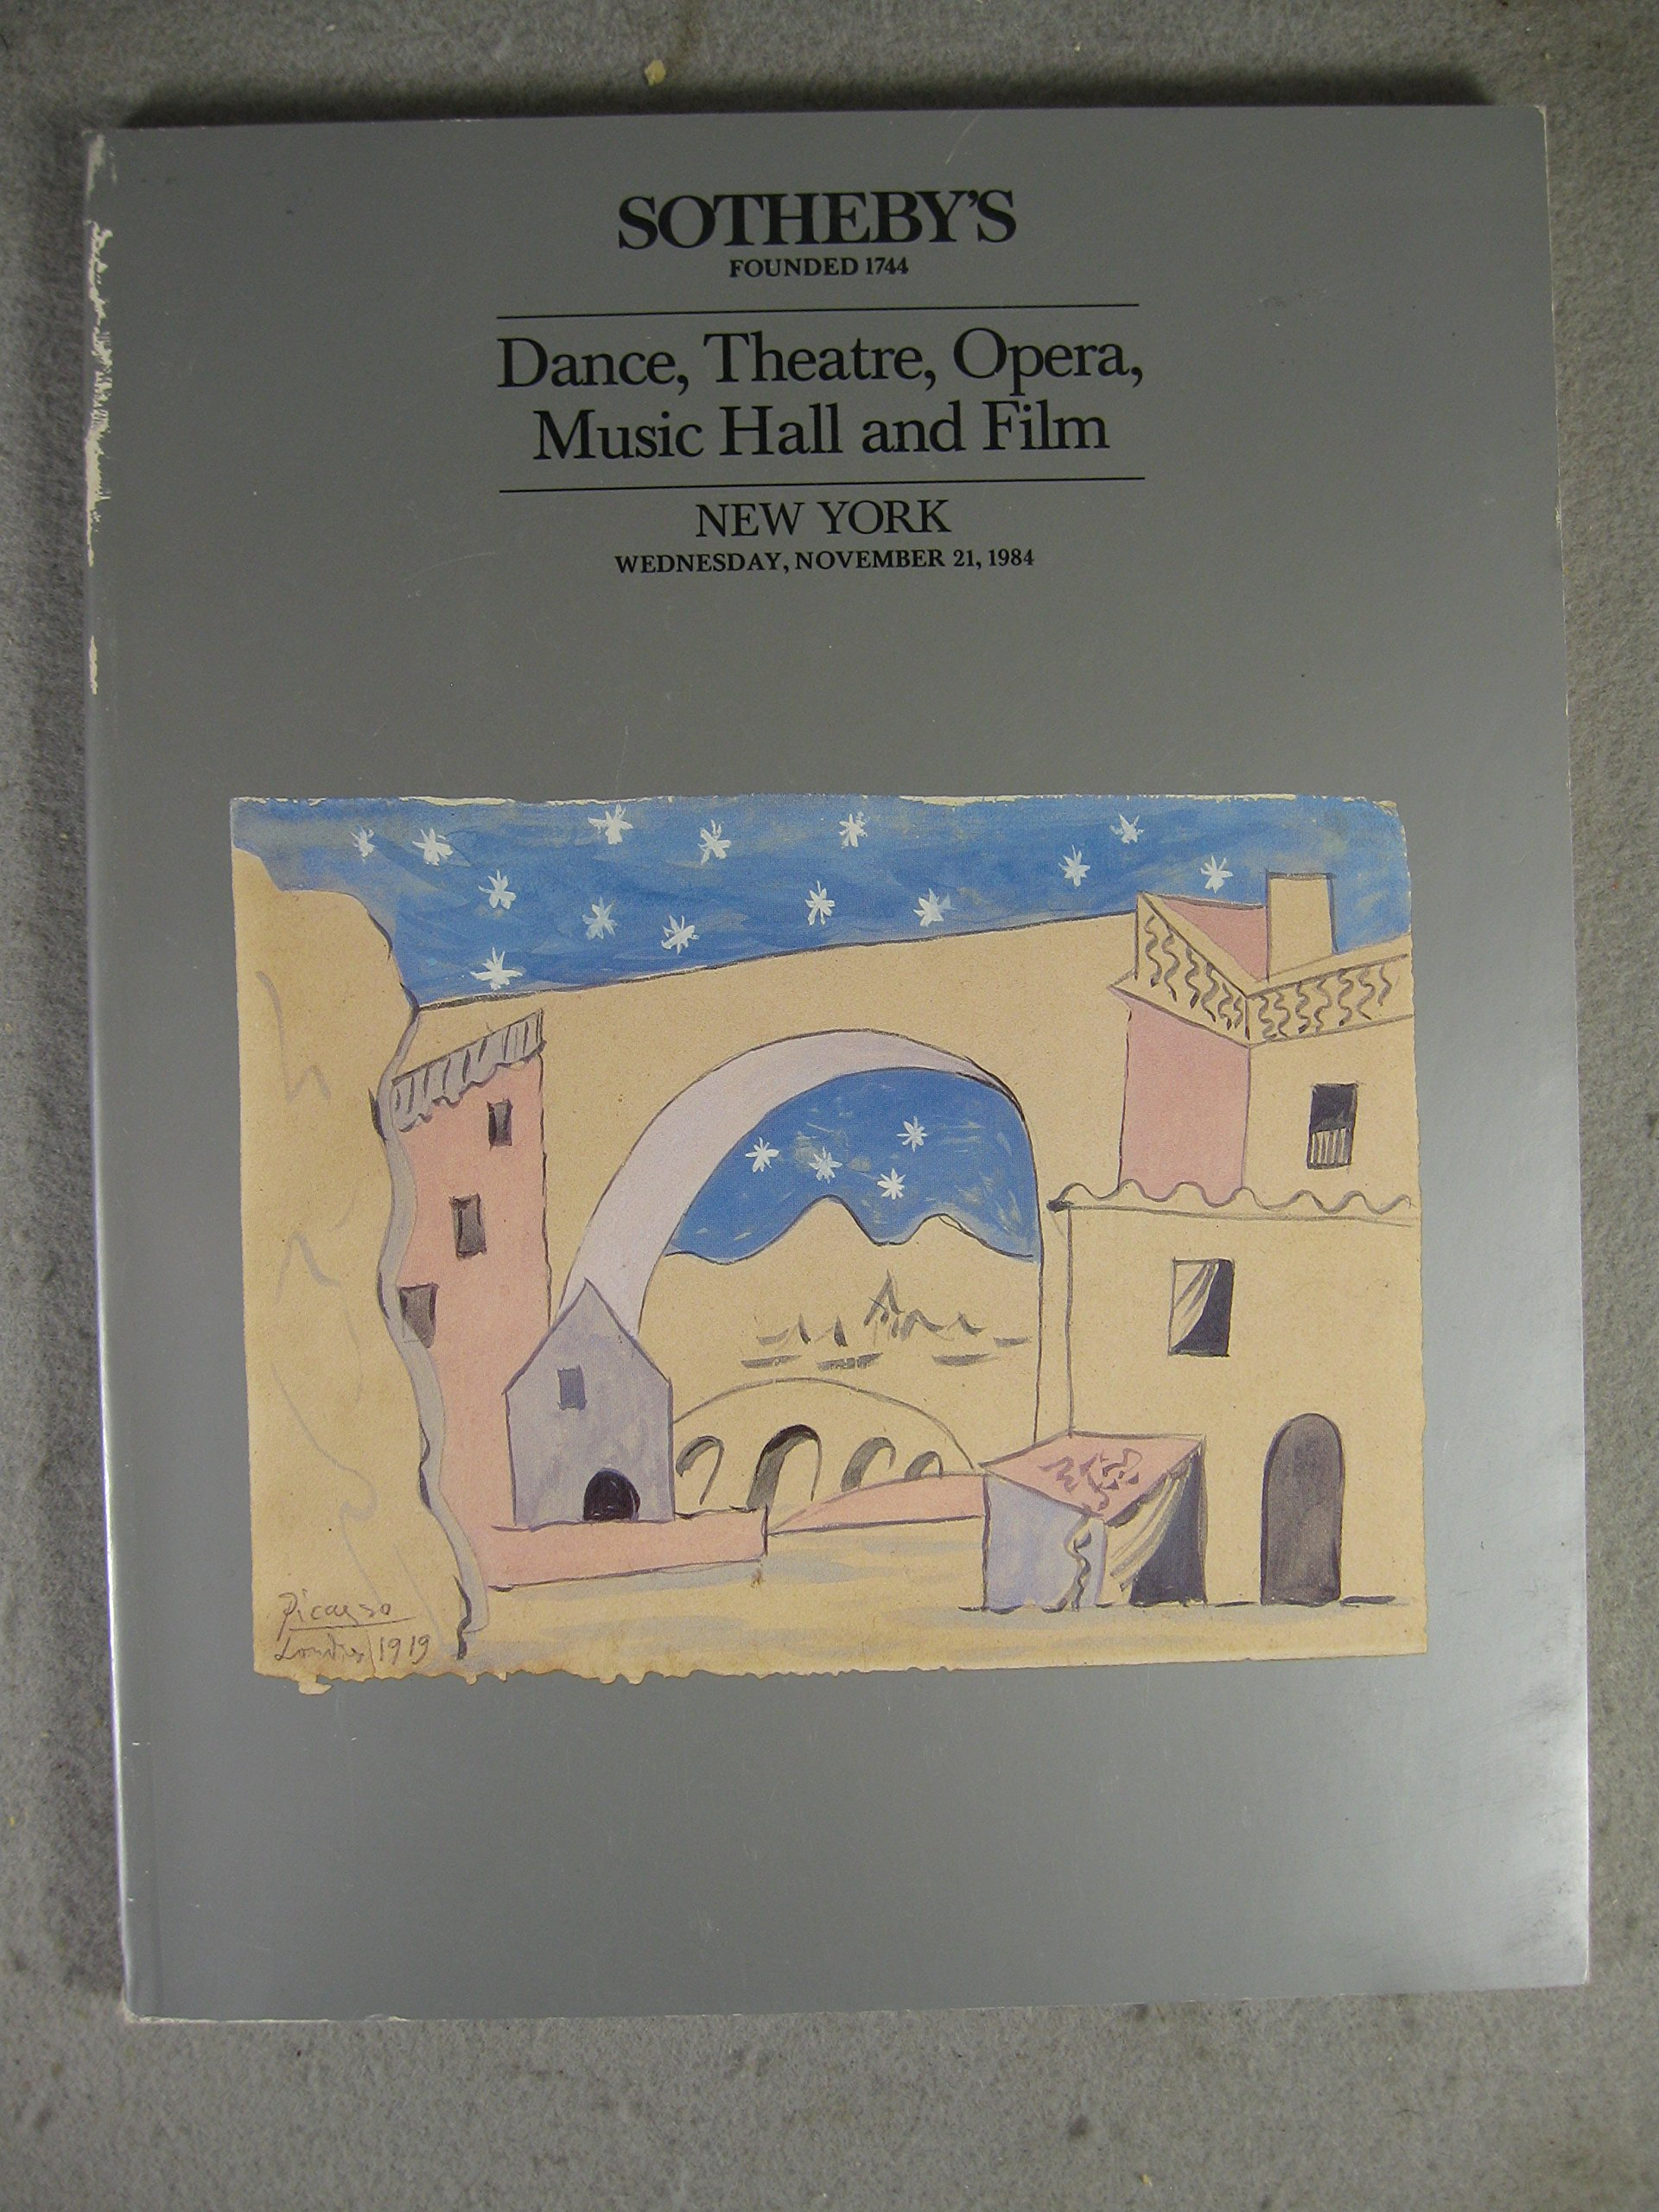 Dance, Theatre, Opera, Music Hall and Film / New York - Wednesday, November 21, 1984